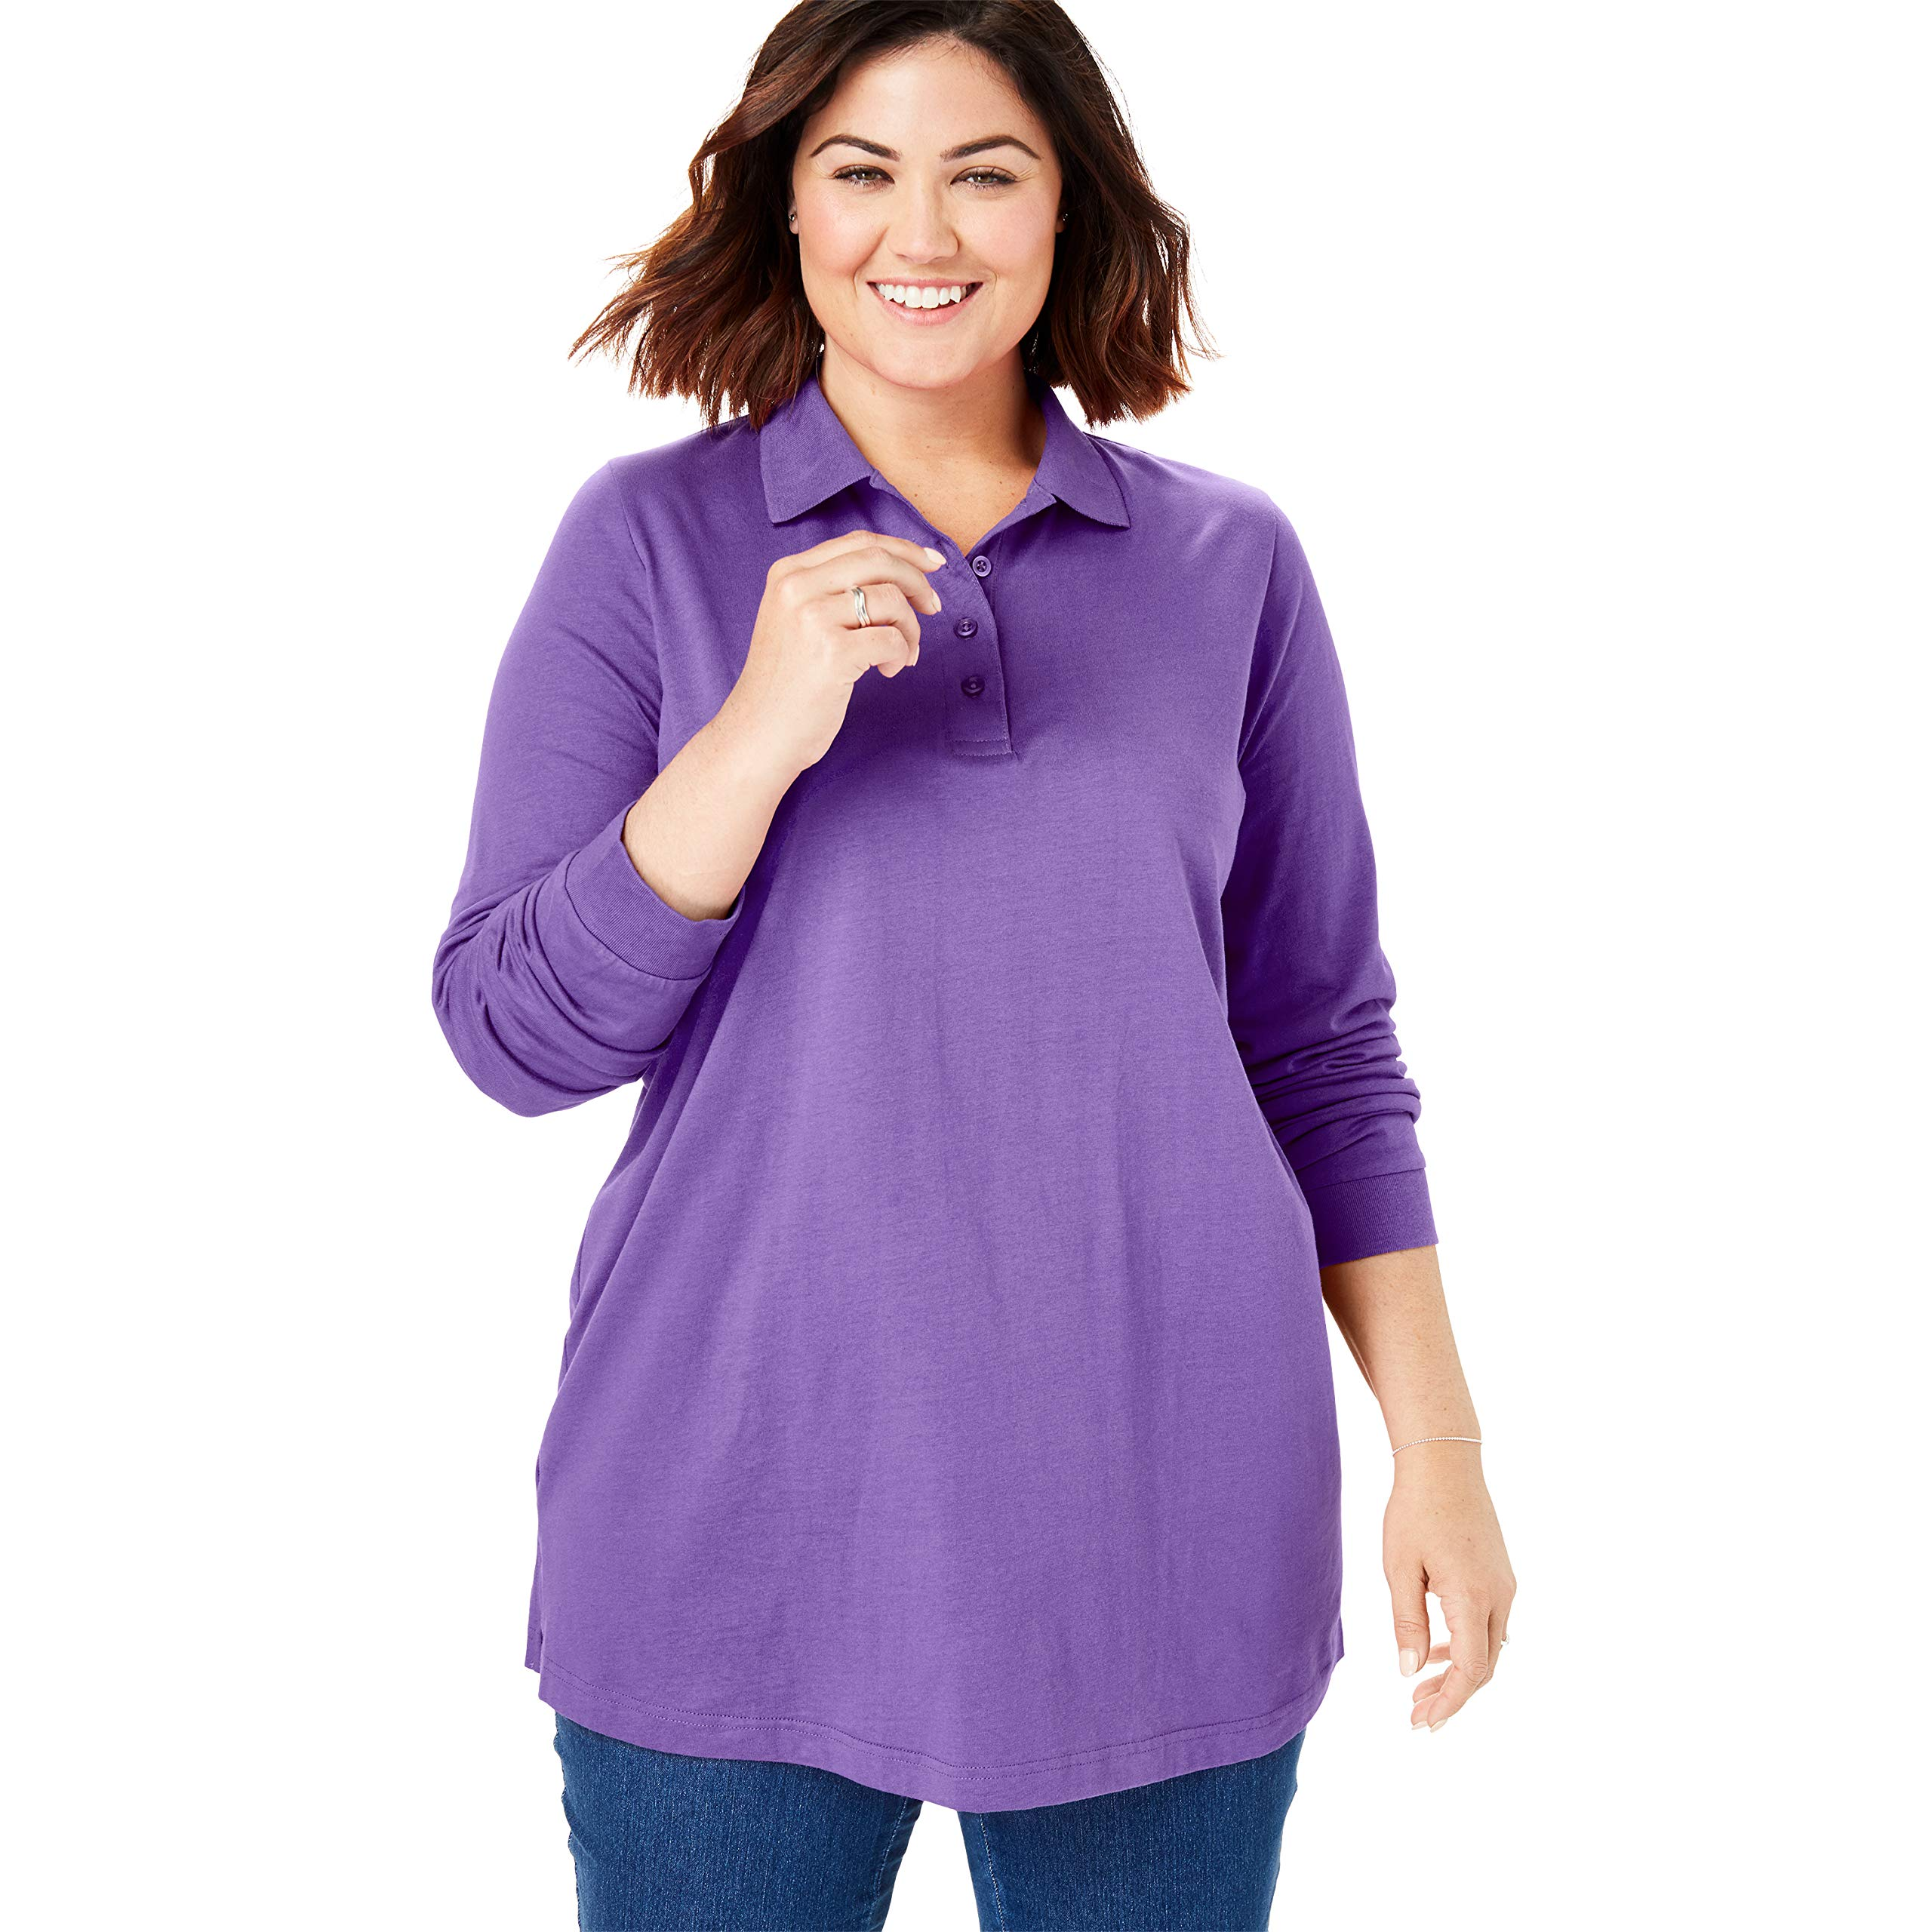 Woman Within Women's Plus Size Long-Sleeve Tunic Polo Shirt - Plum Burst, L by Woman Within